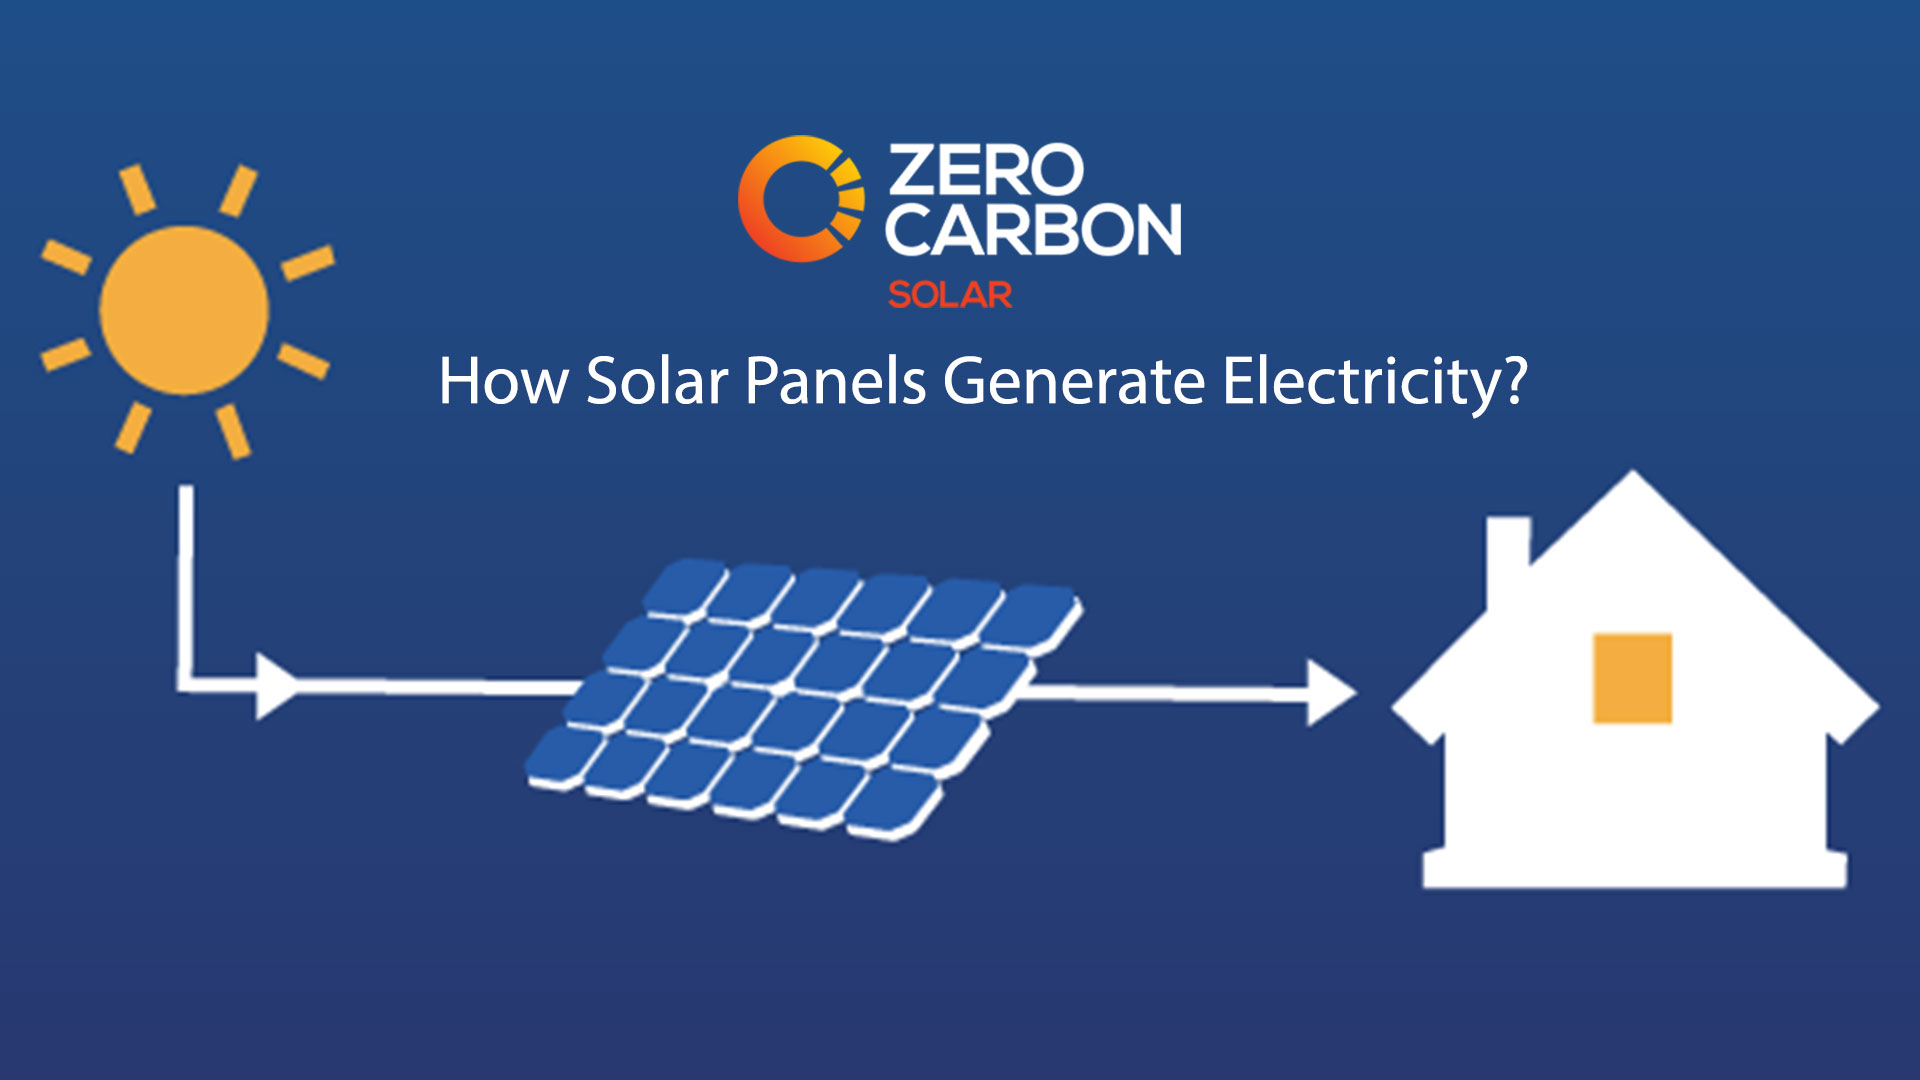 How Solar Panels Generate Electricity?